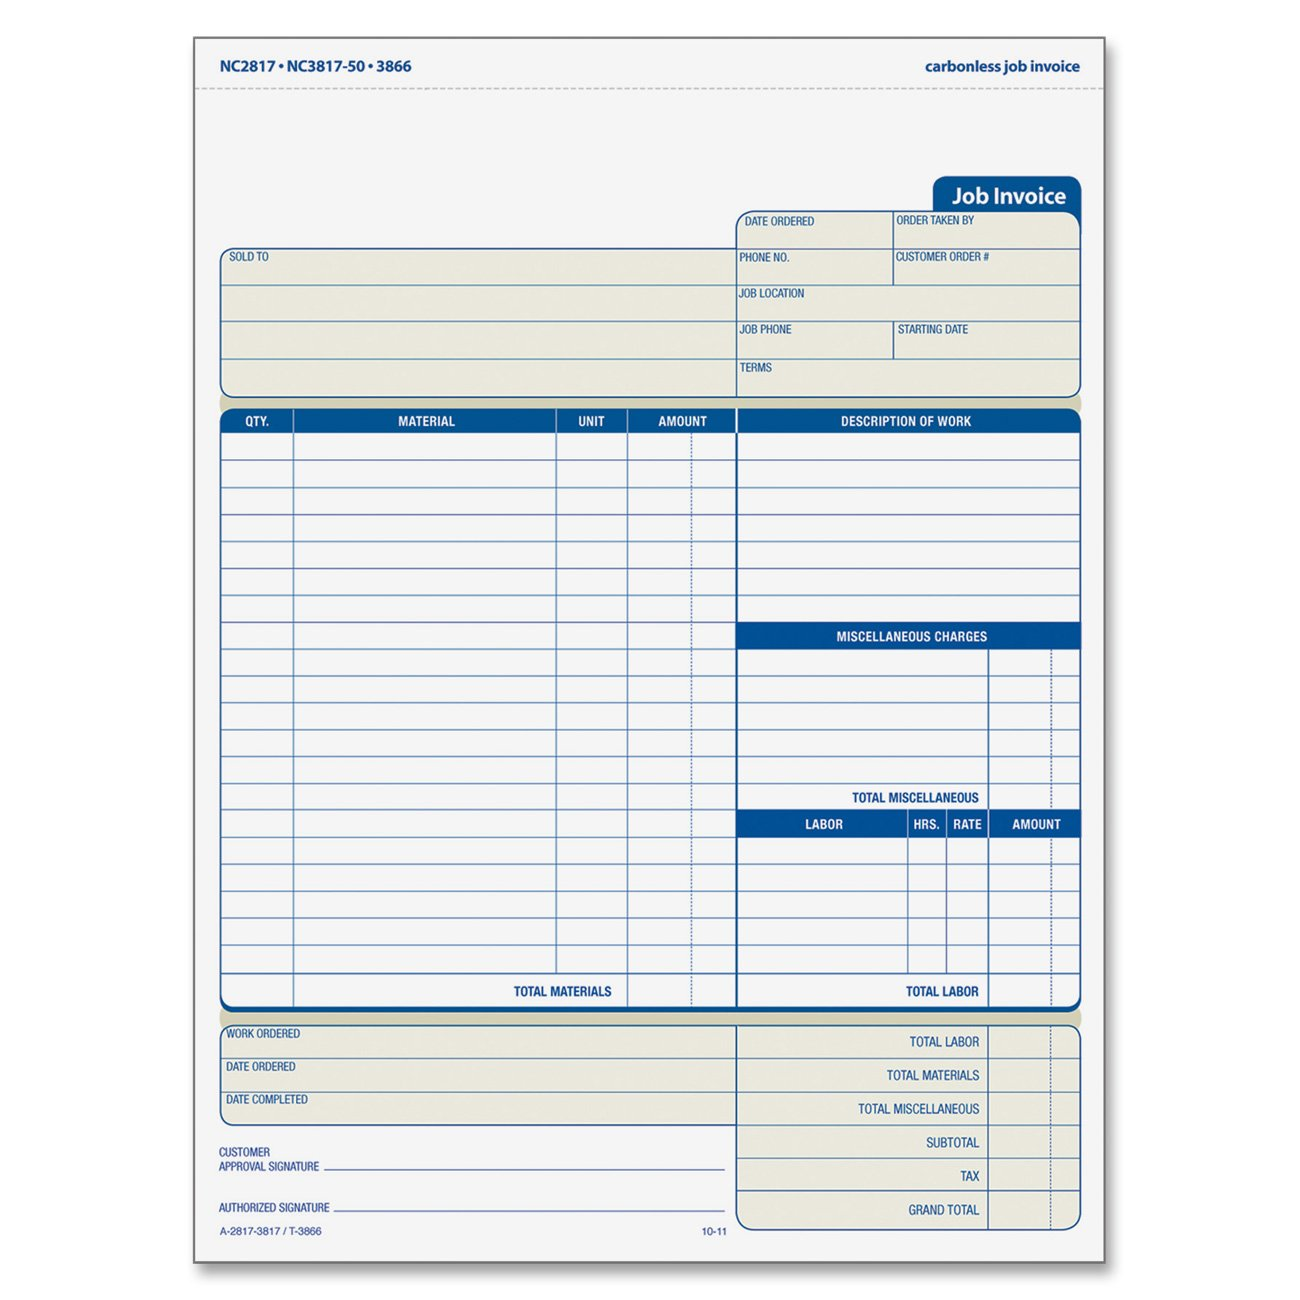 Job Invoice Forms Pertaminico - Free business invoice forms for service business